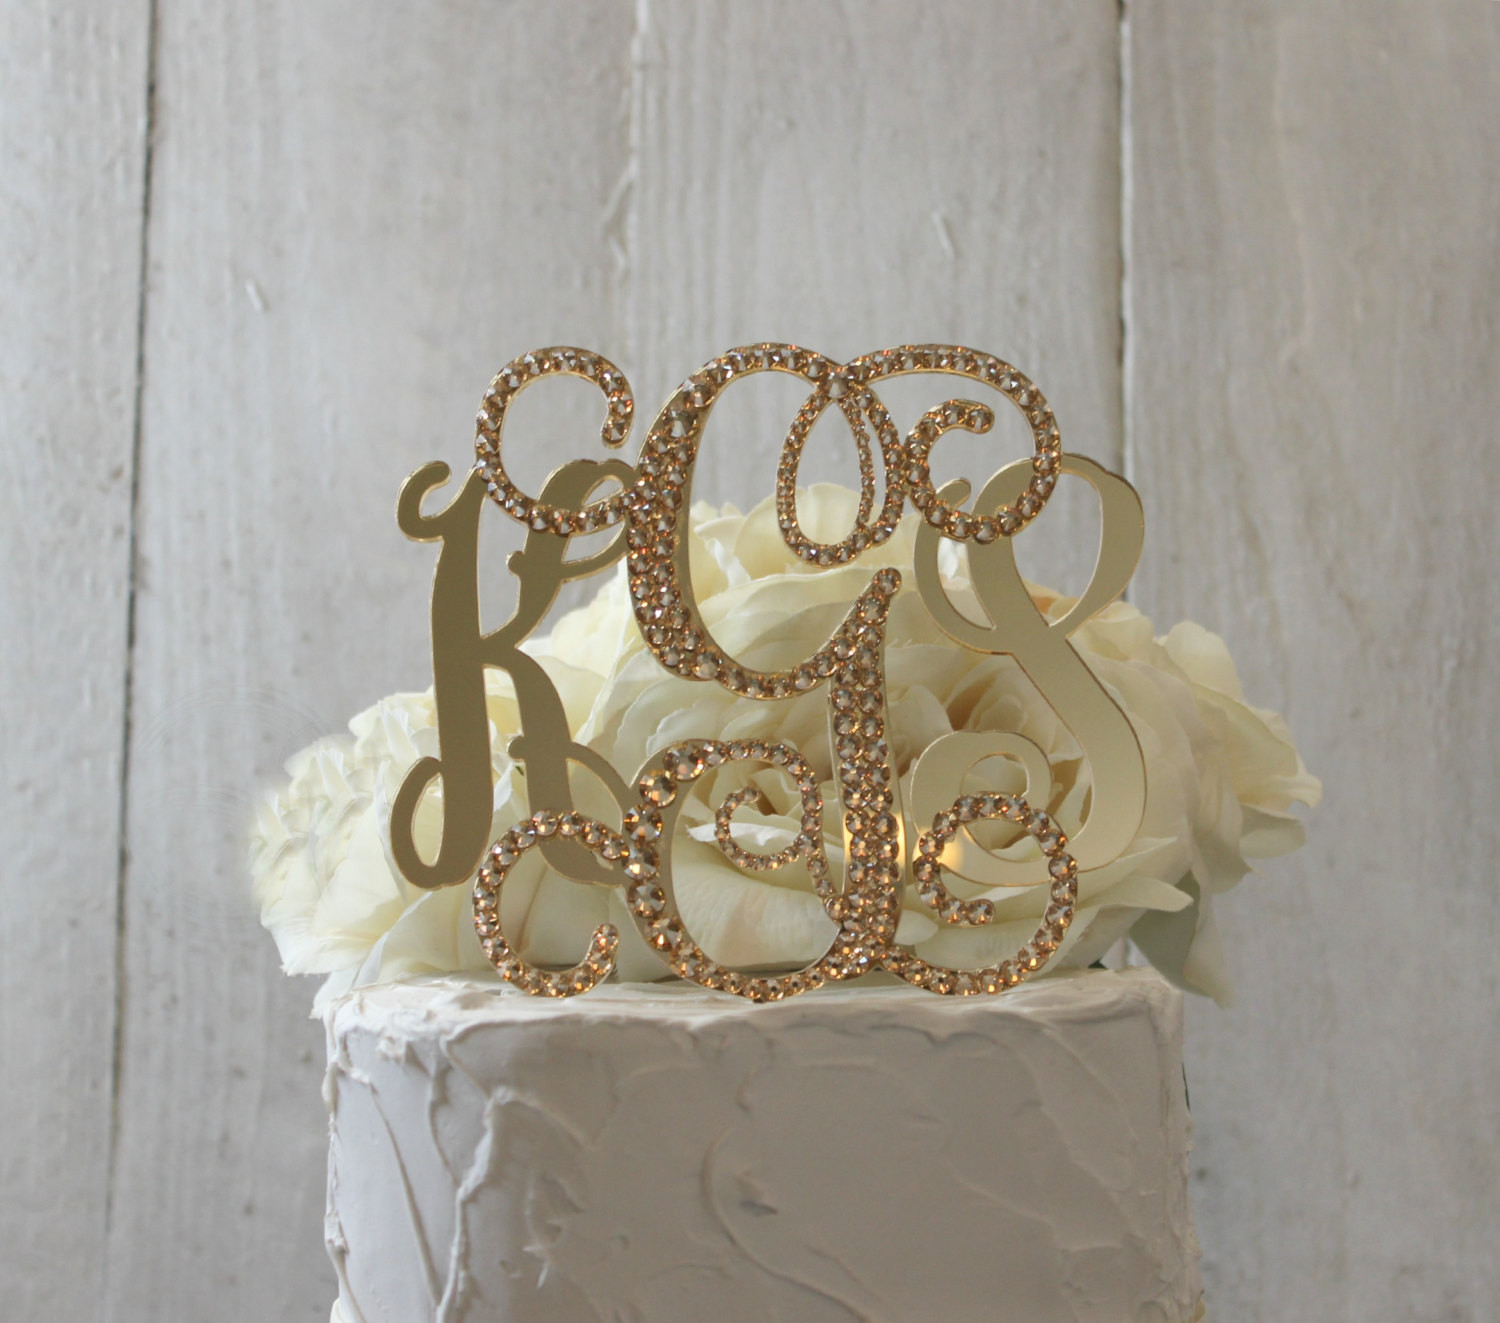 Gold Initial Cake Toppers For Wedding Cakes  Gold 3 Initial Monogram Wedding Cake Topper GOLD Swarovski